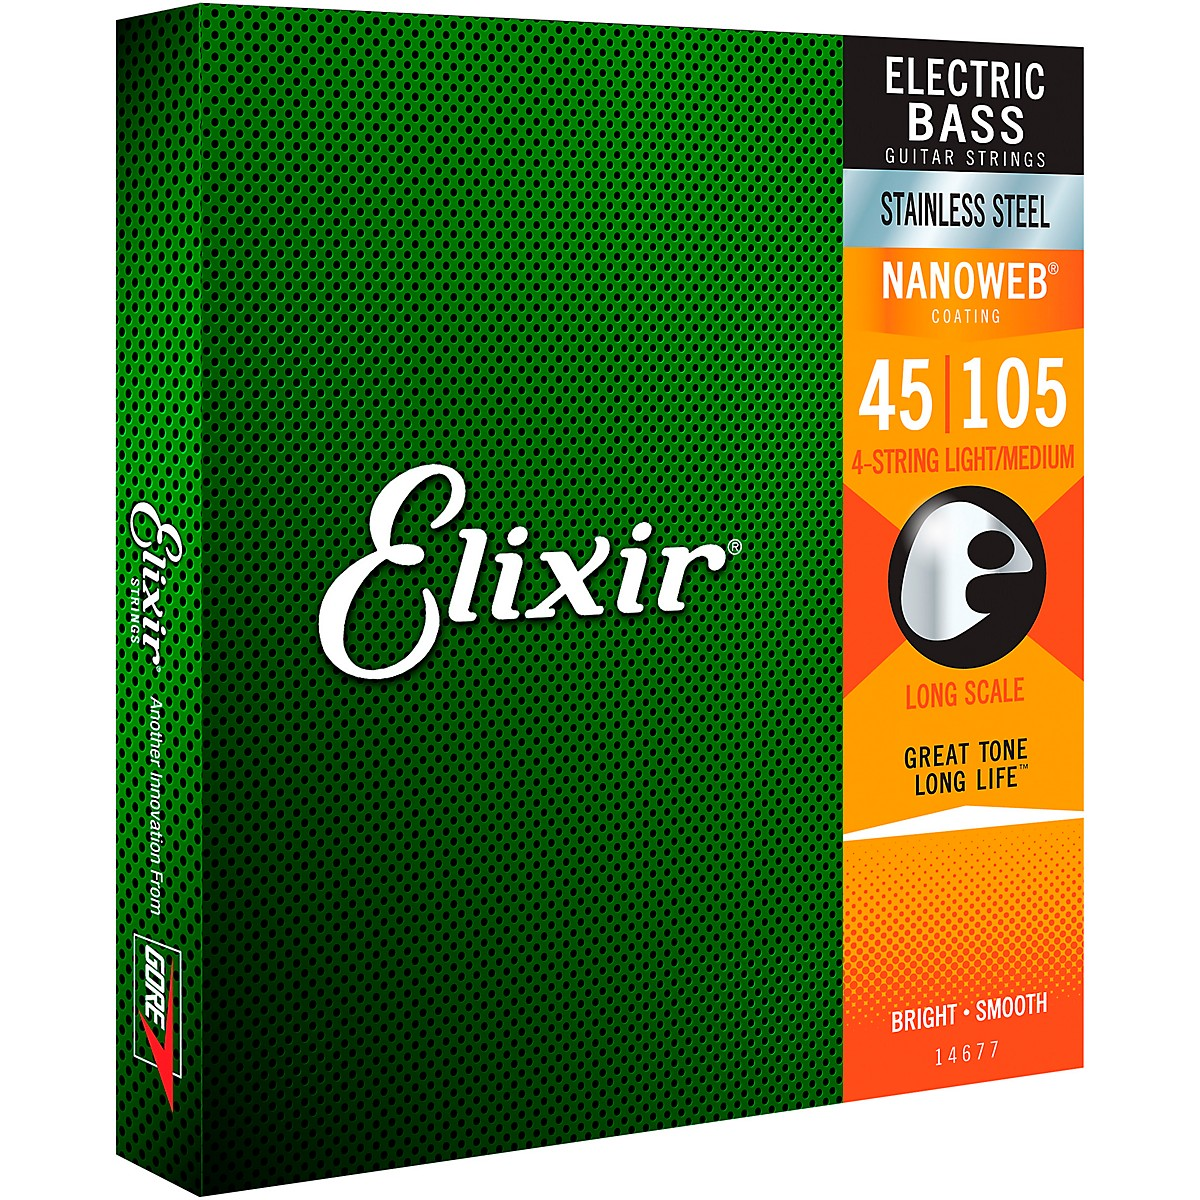 Elixir Stainless Steel 4-String Bass Strings with NANOWEB Coating, Long Scale, Light/Medium (.045-.105)